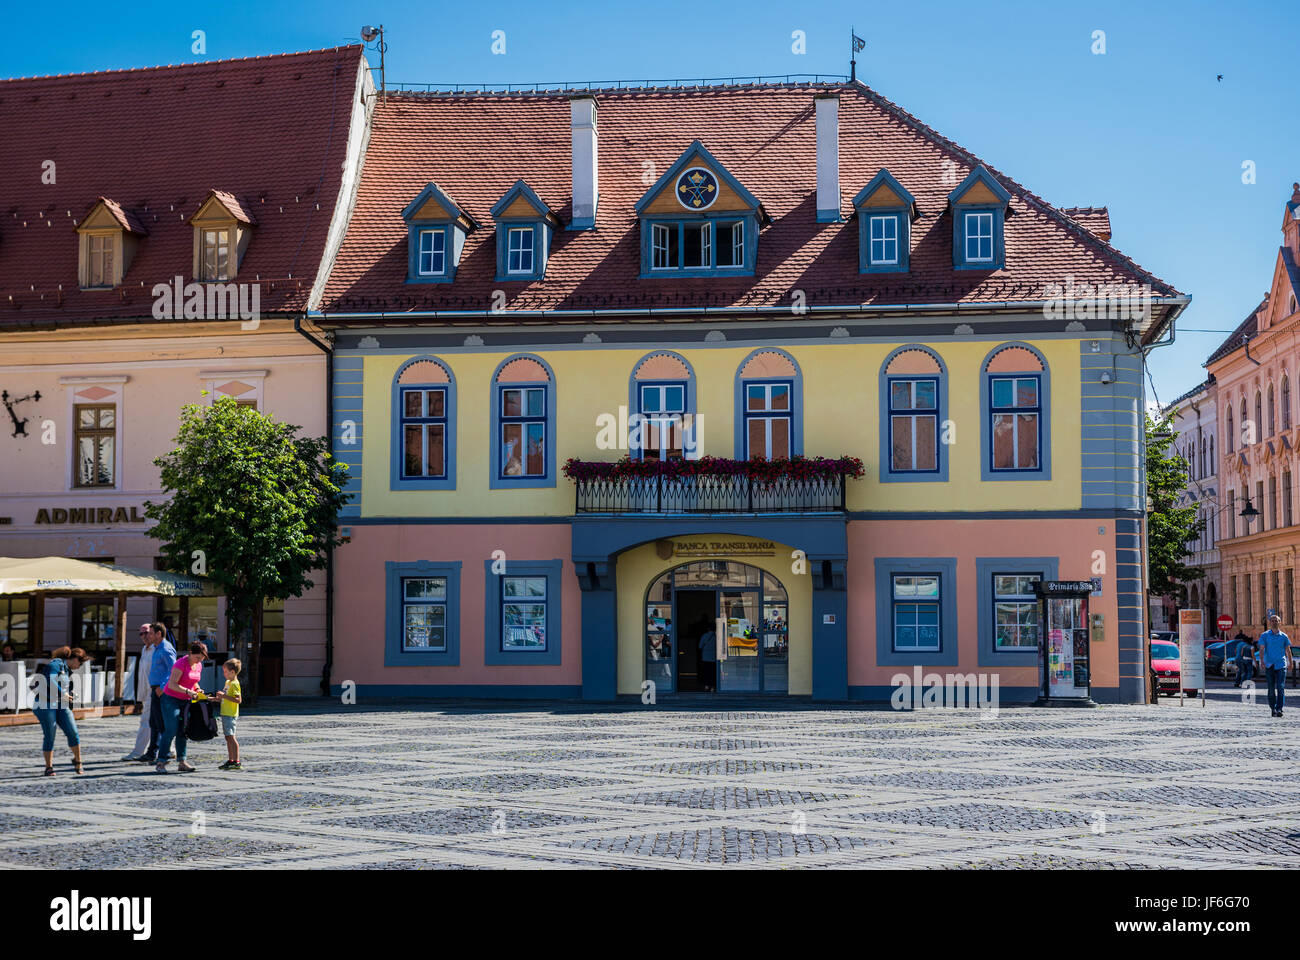 Lutsch House (Casa Lutsch) with Banca Transilvania bank on Large Square in Historic Center of Sibiu city of Transylvania - Stock Image